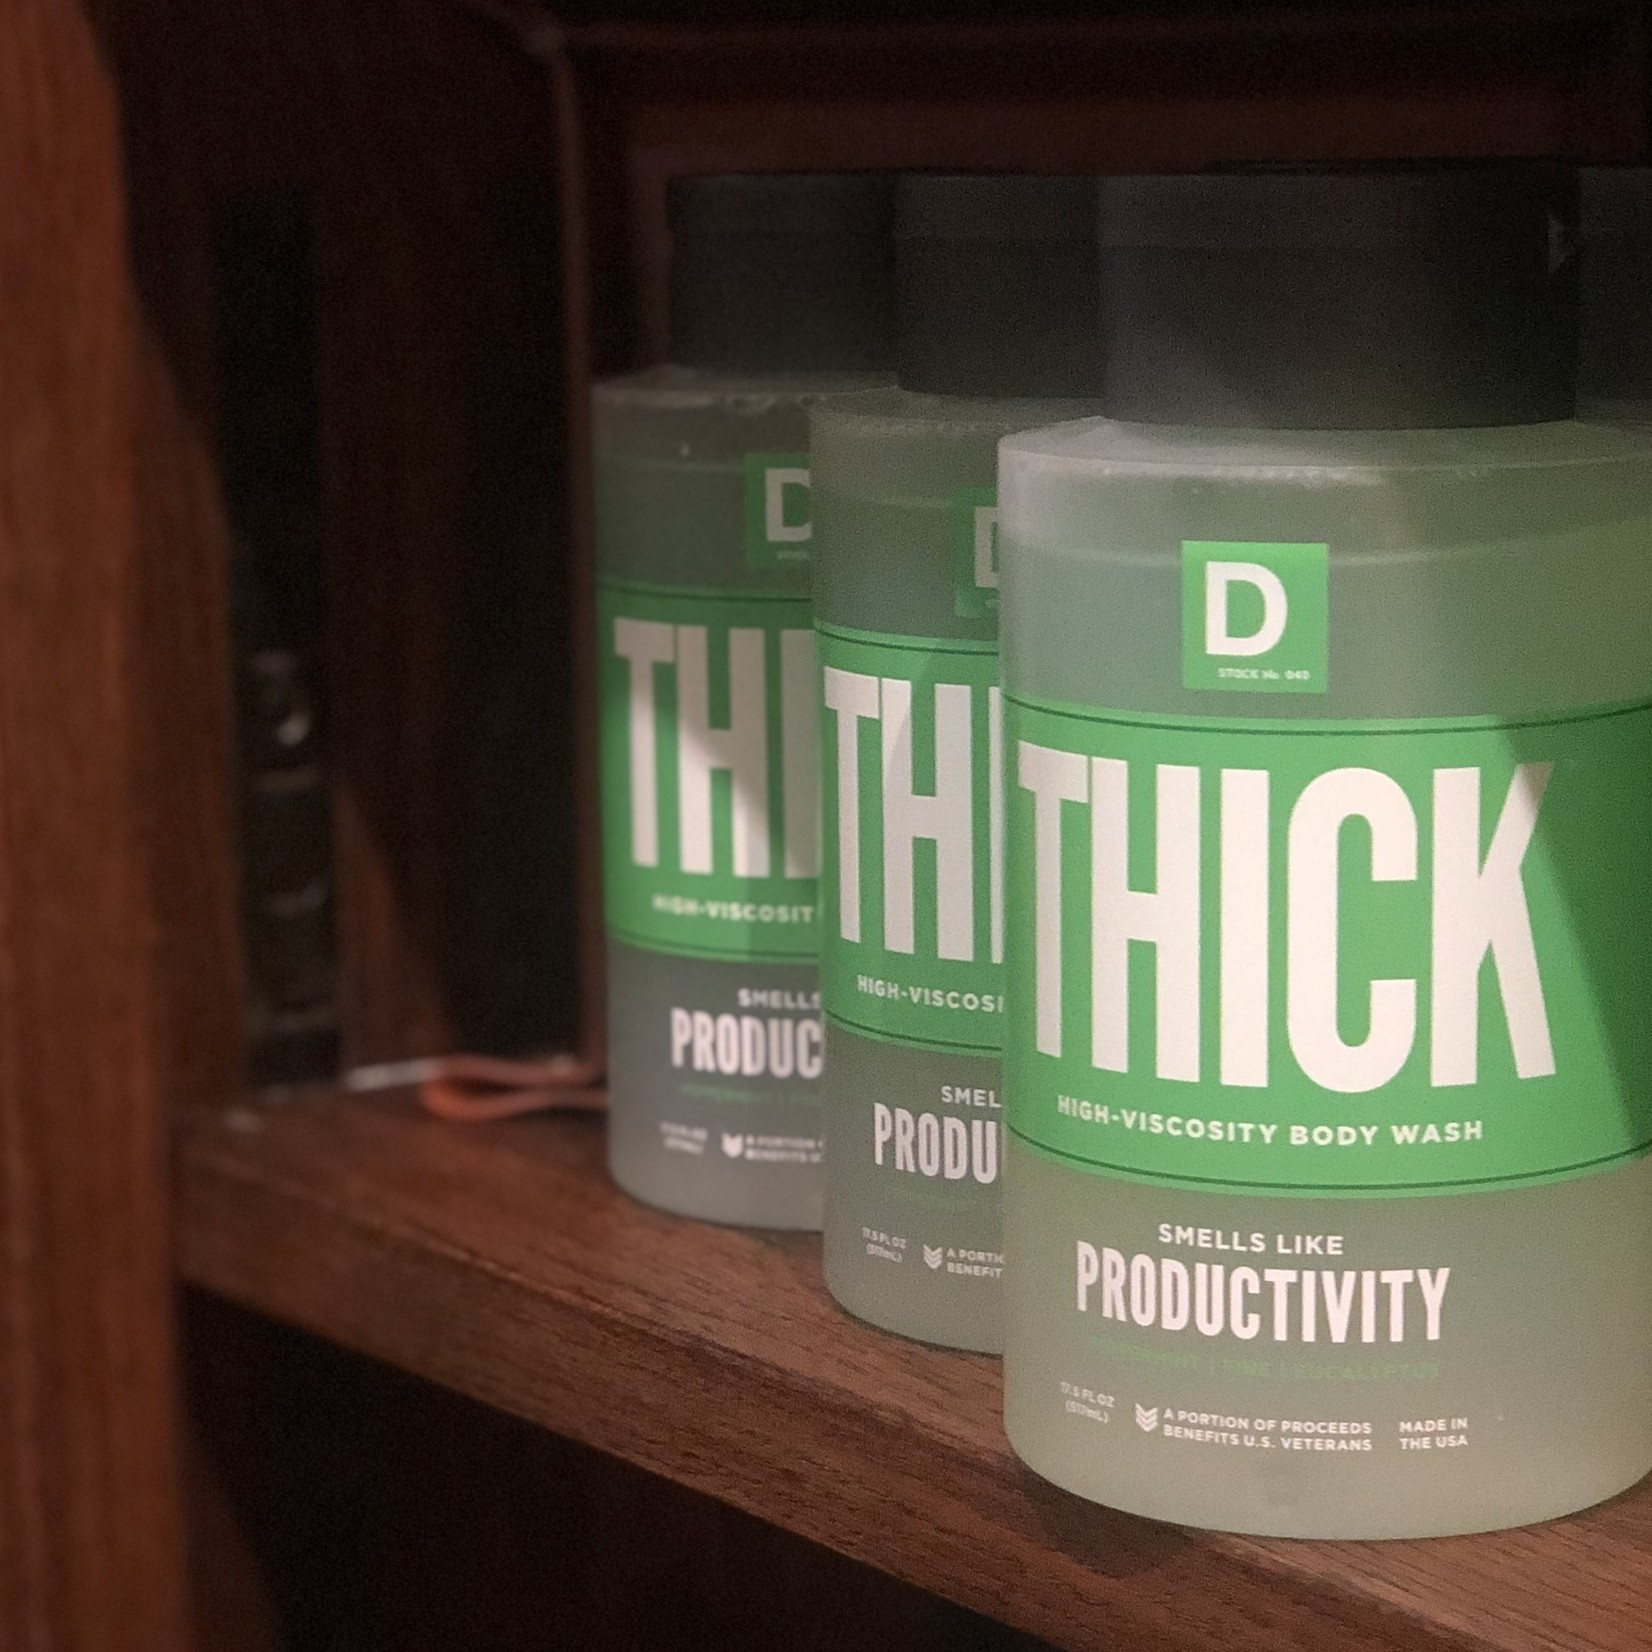 Duke Cannon THICK High-Viscosity Body Wash